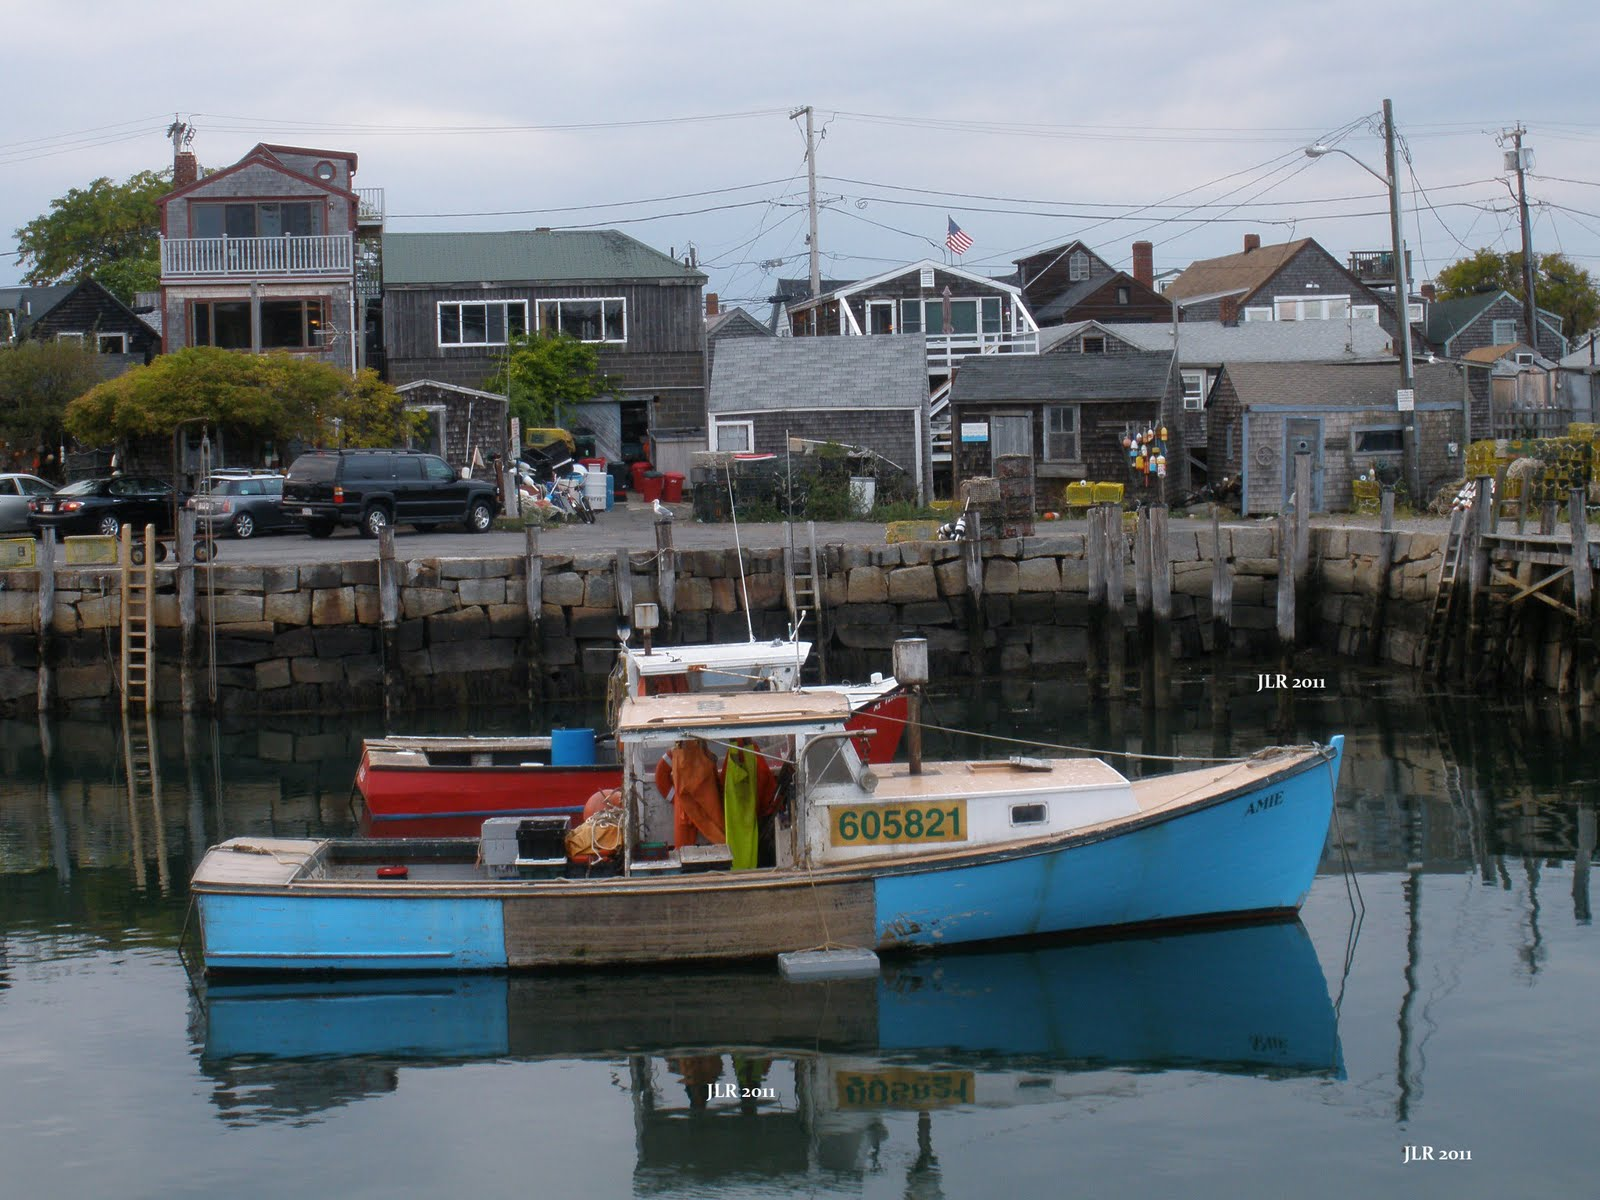 Rail and Ship Action: Lobster Boat In Rockport, Mass